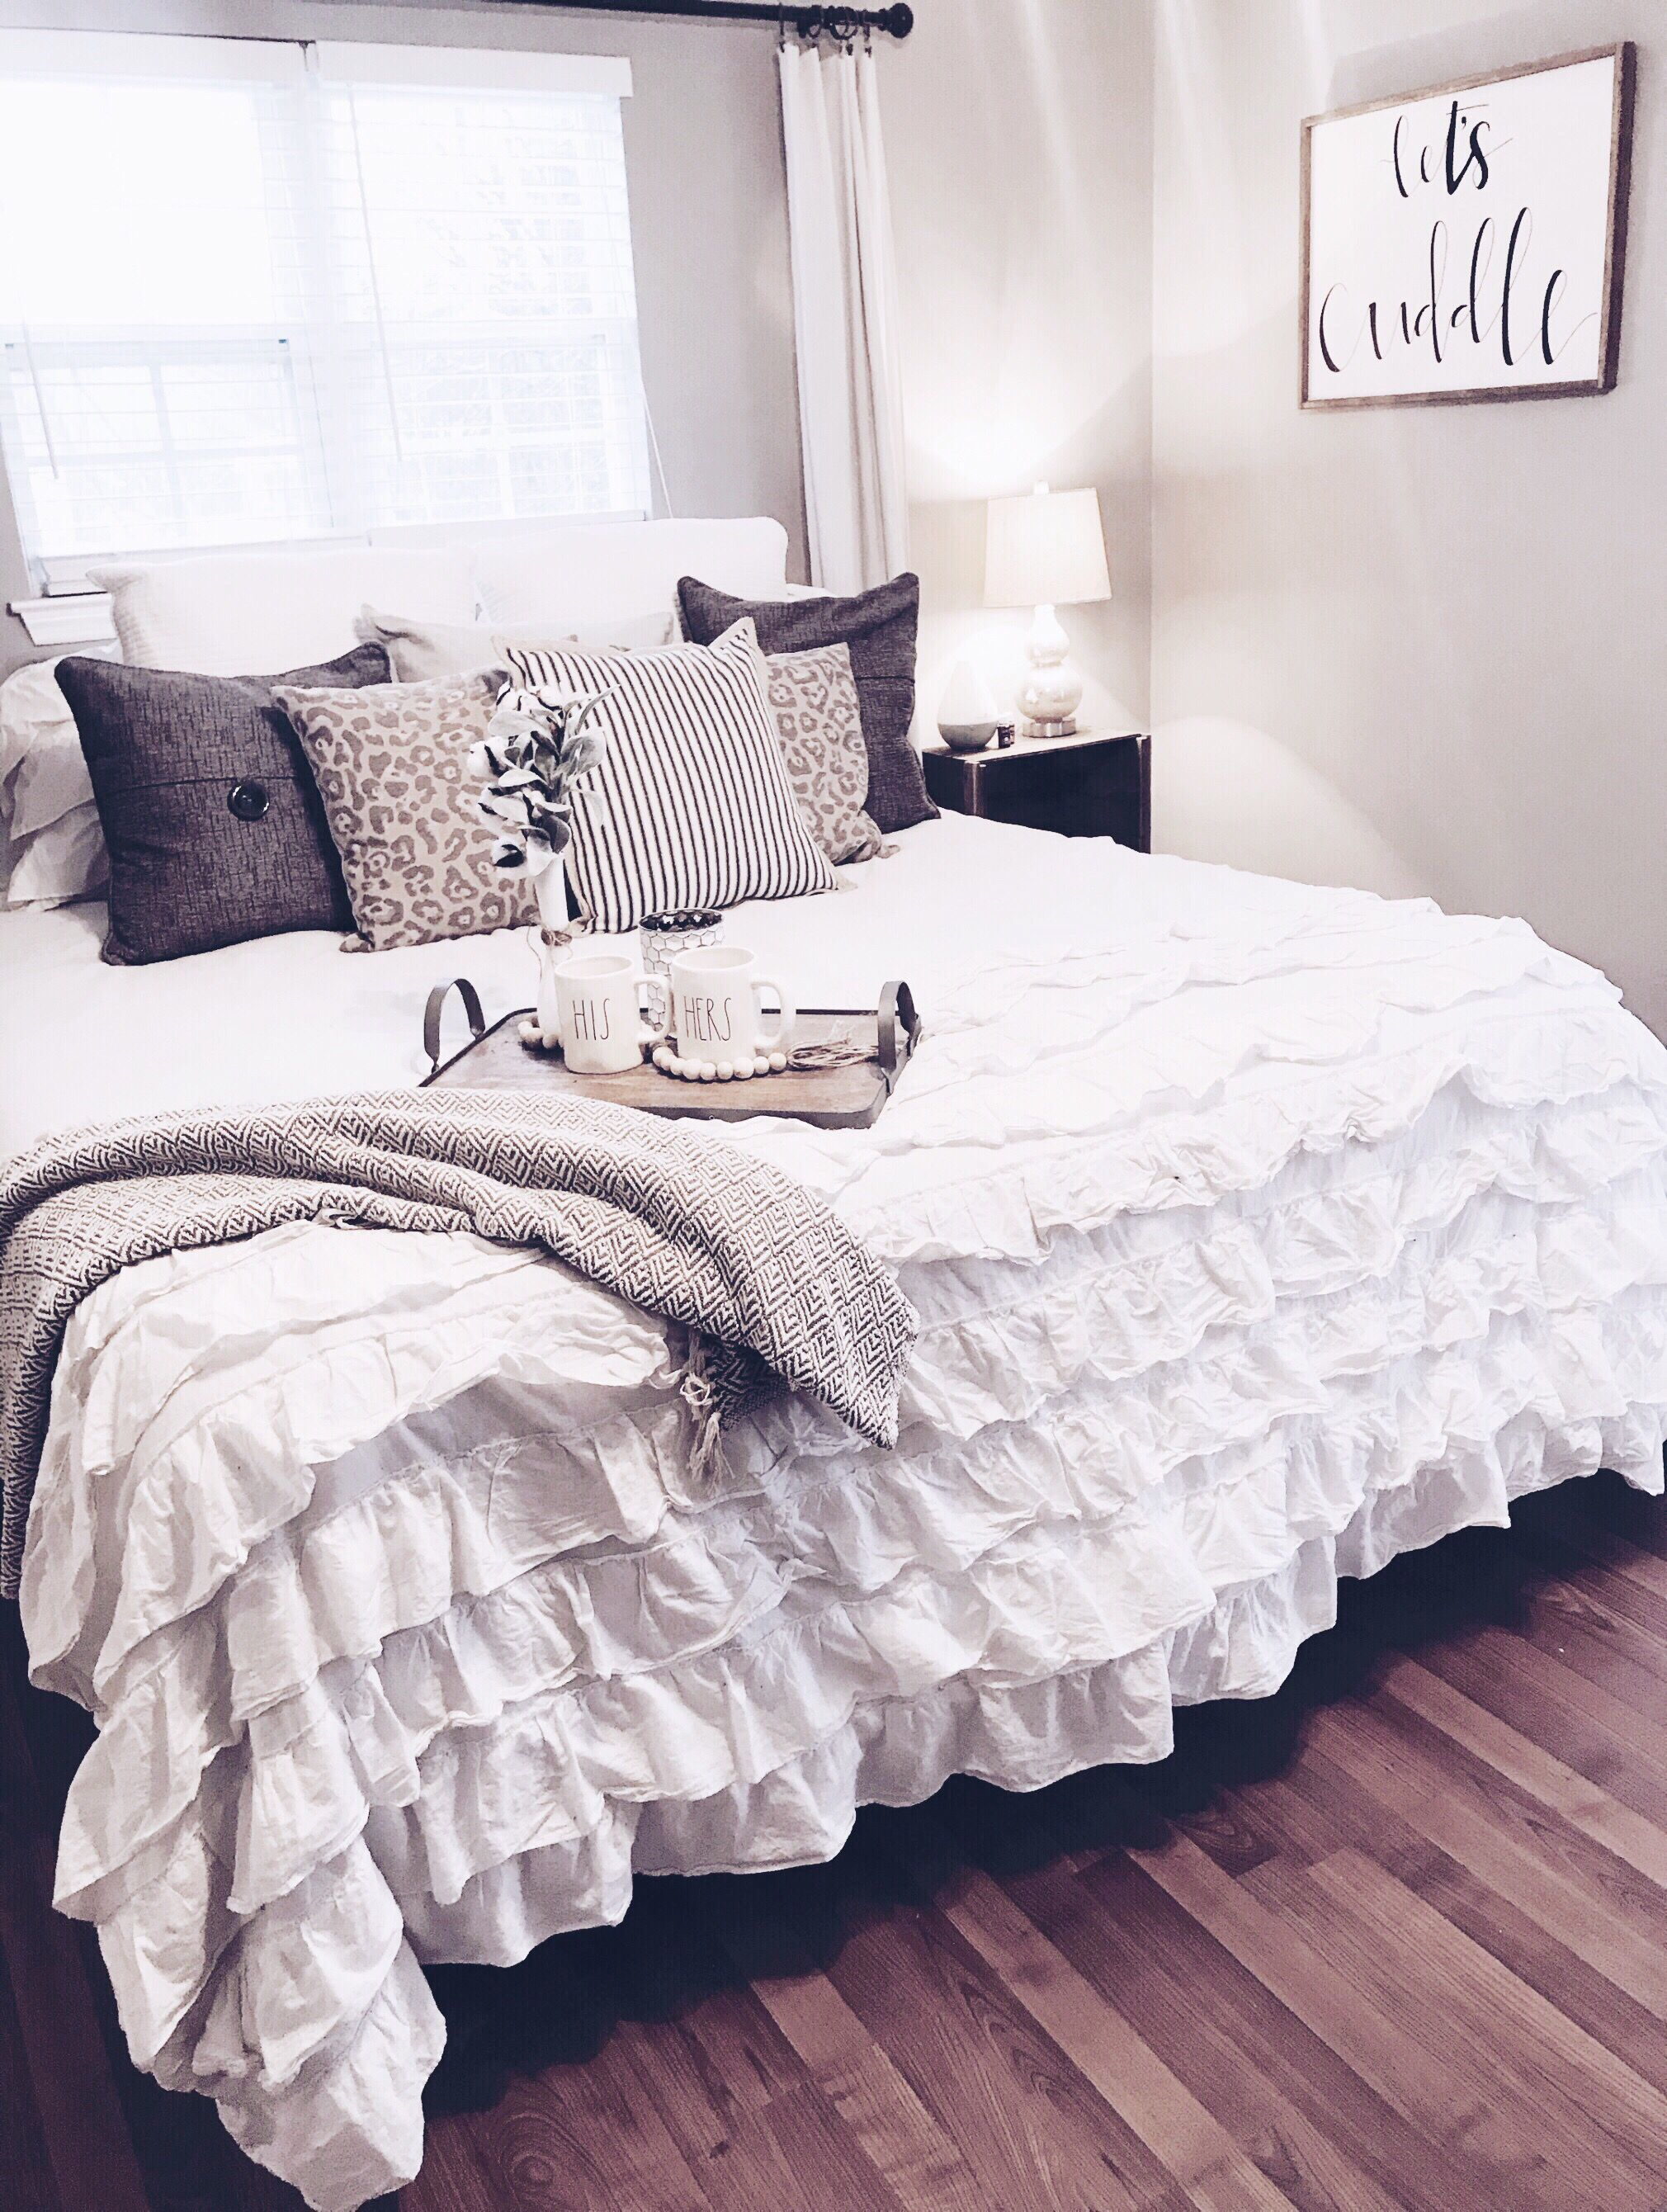 White Bedding Refresh Let S Cuddle Sign Wall Decor Ruffle Bedding